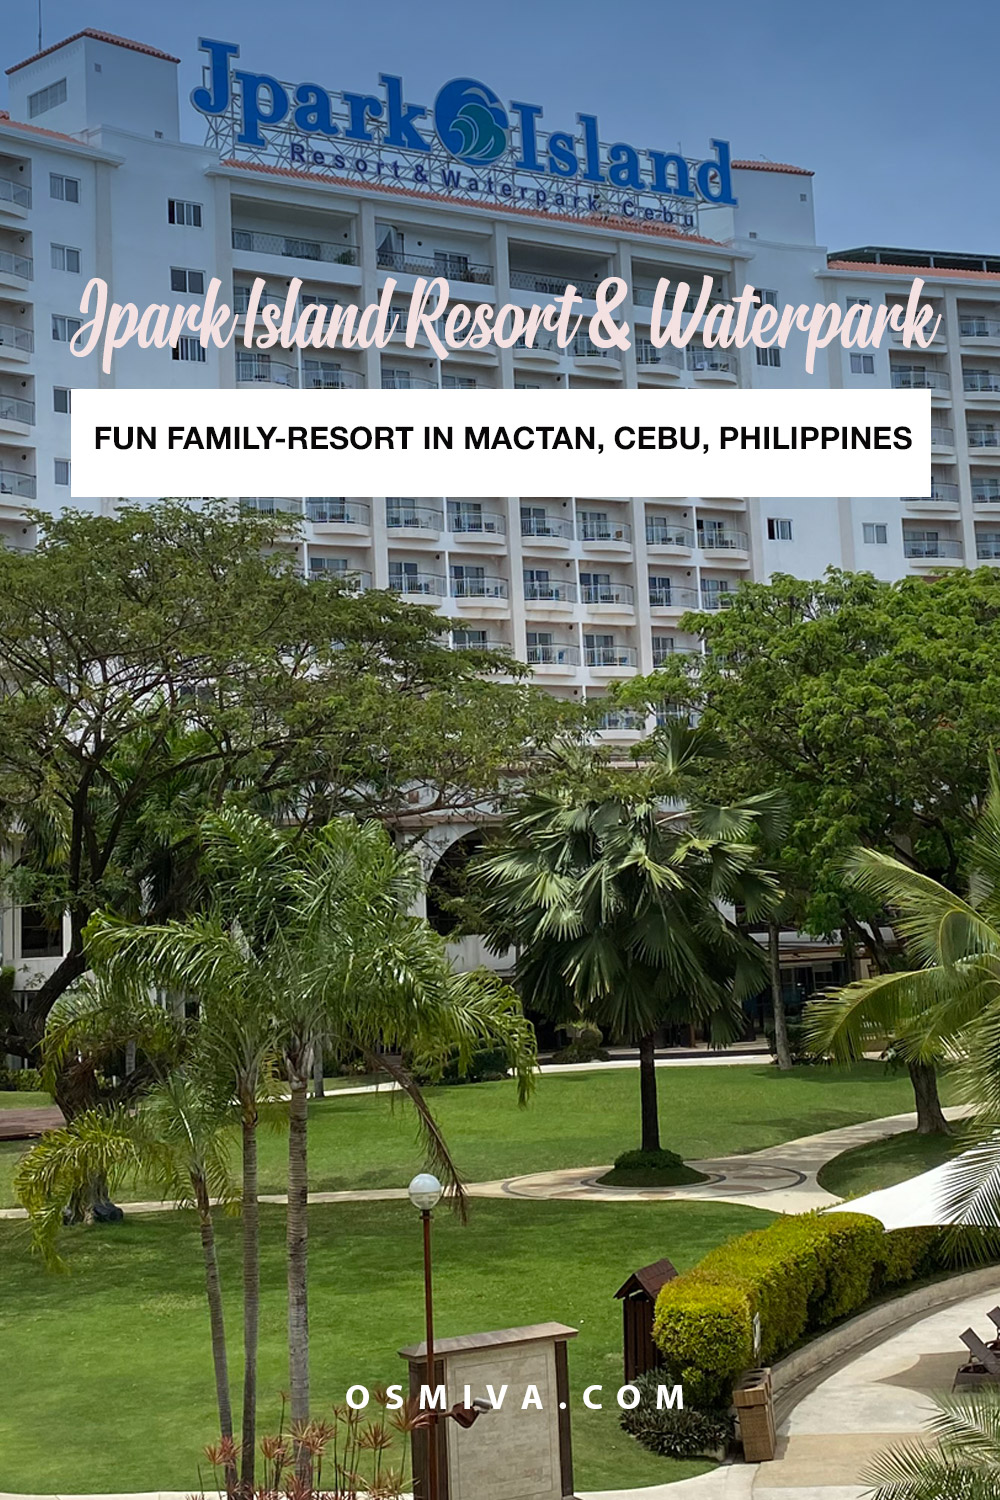 Fun long-weekend vacation at the Jpark Island Resort and Waterpark (Cebu, Philippines) with the kids